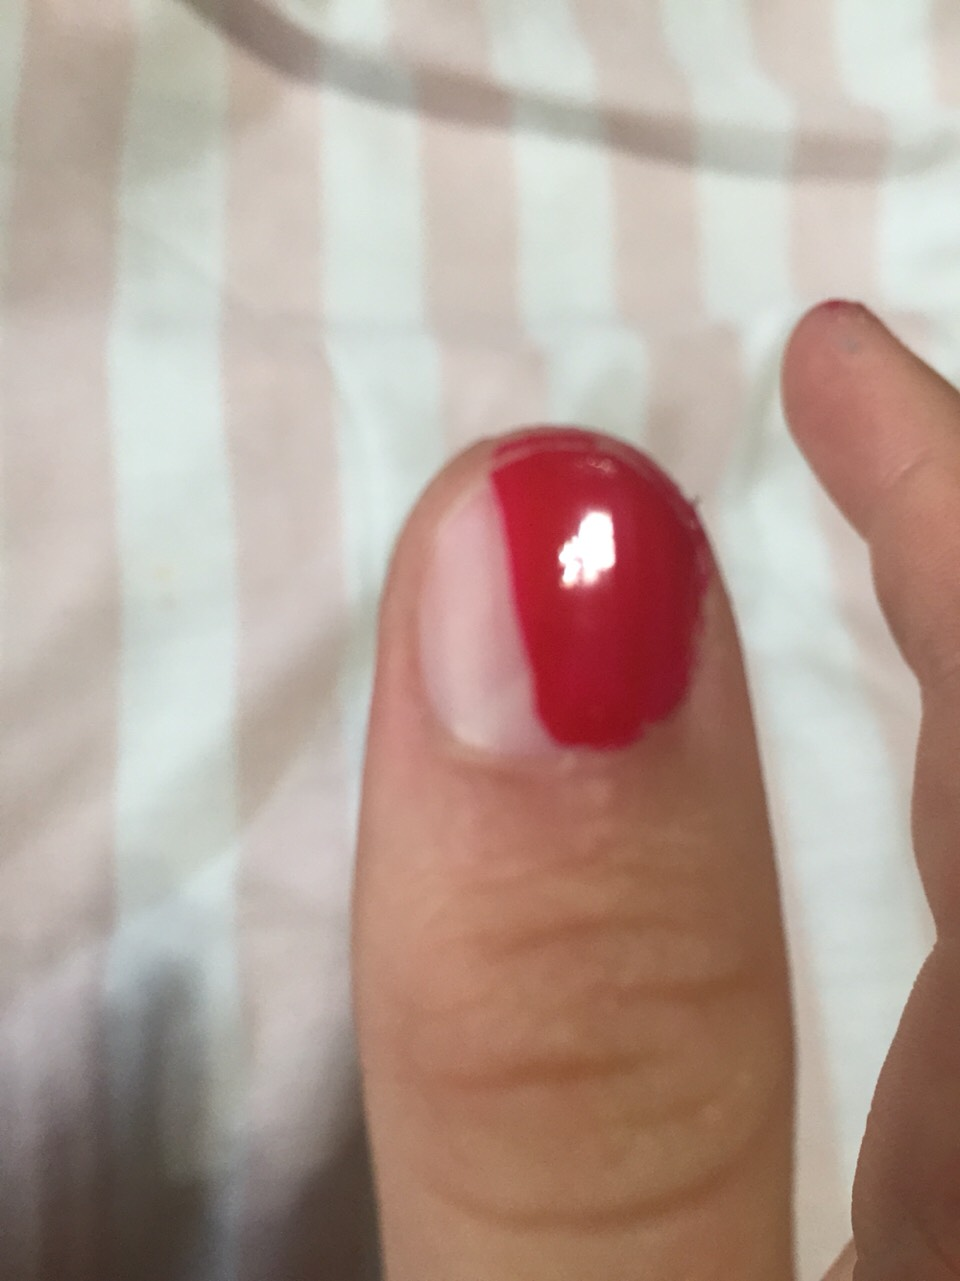 Paint 1/2 your thumb red